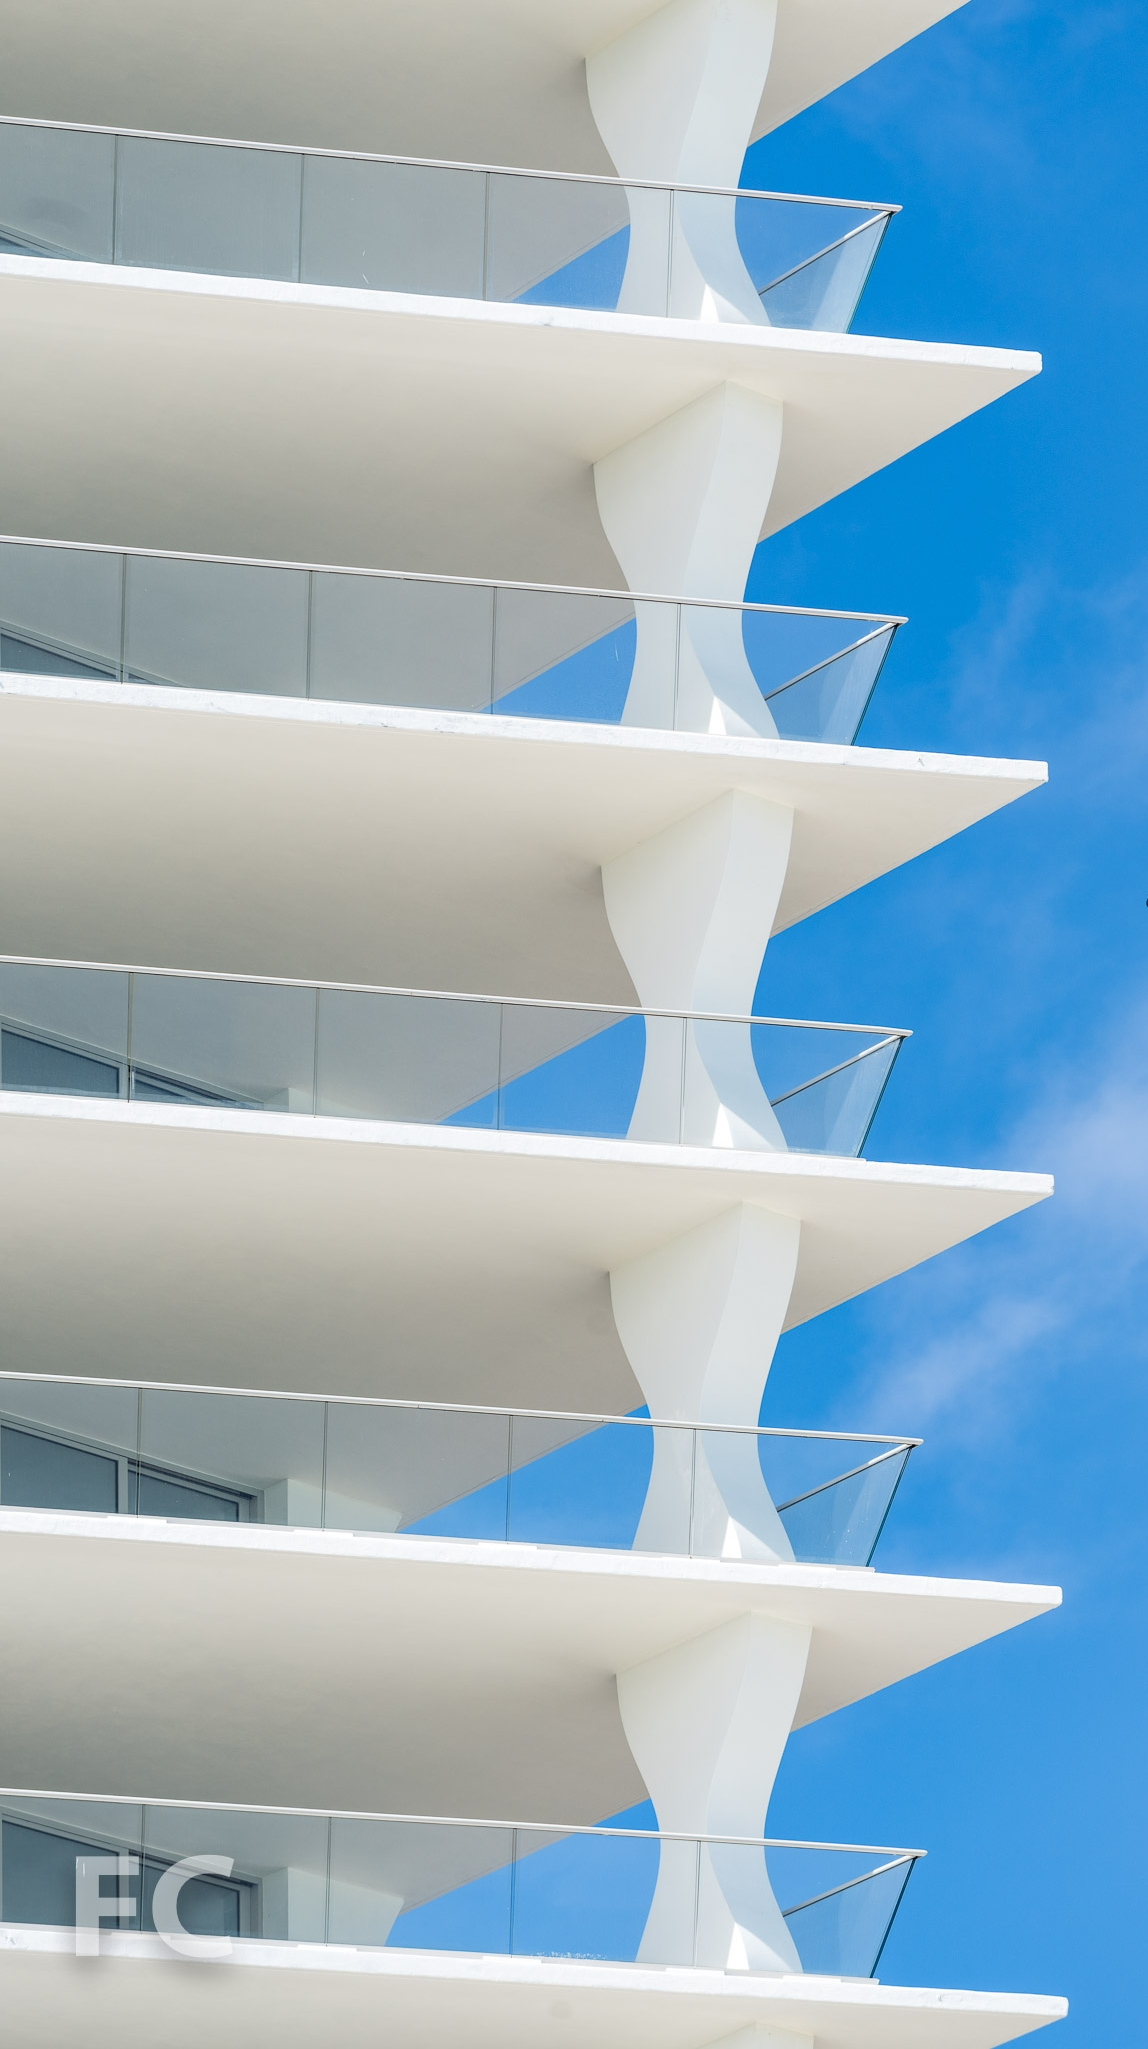 Close-up of the tower balconies.